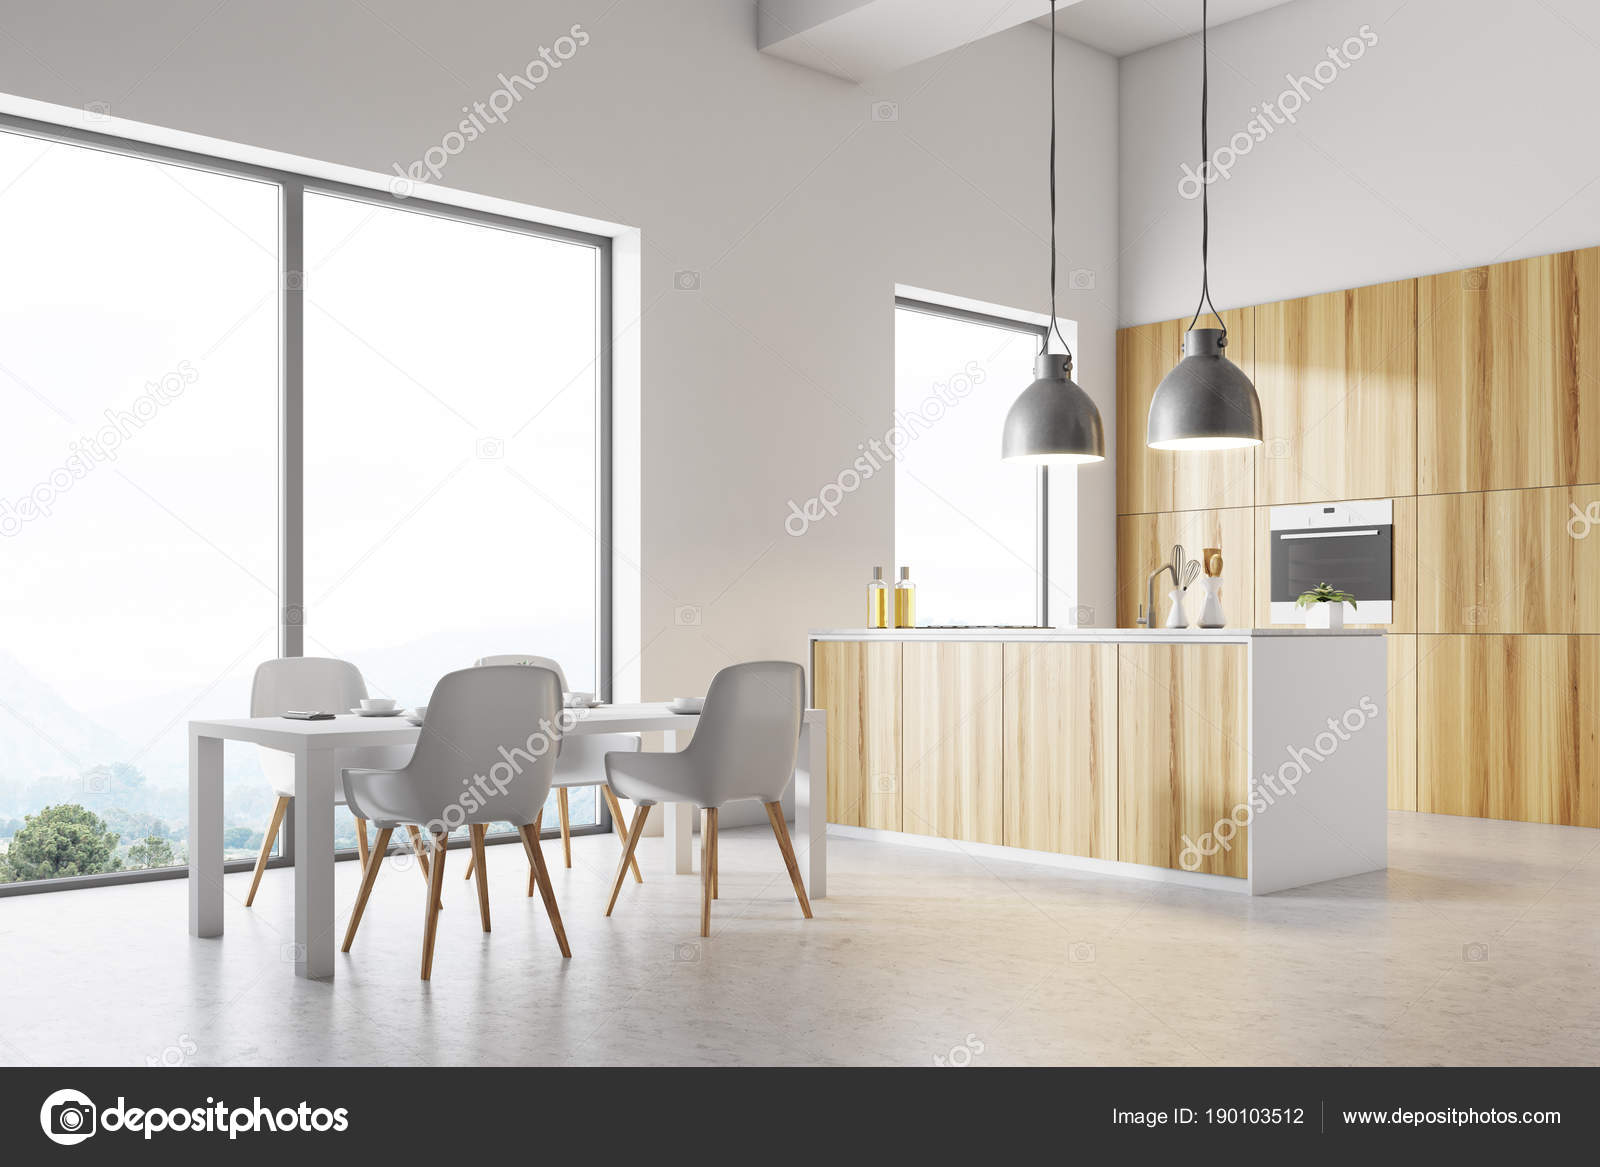 kitchen nook table set wall cabinets with glass doors 白色厨房角落 白色桌 图库照片 c denisismagilov 190103512